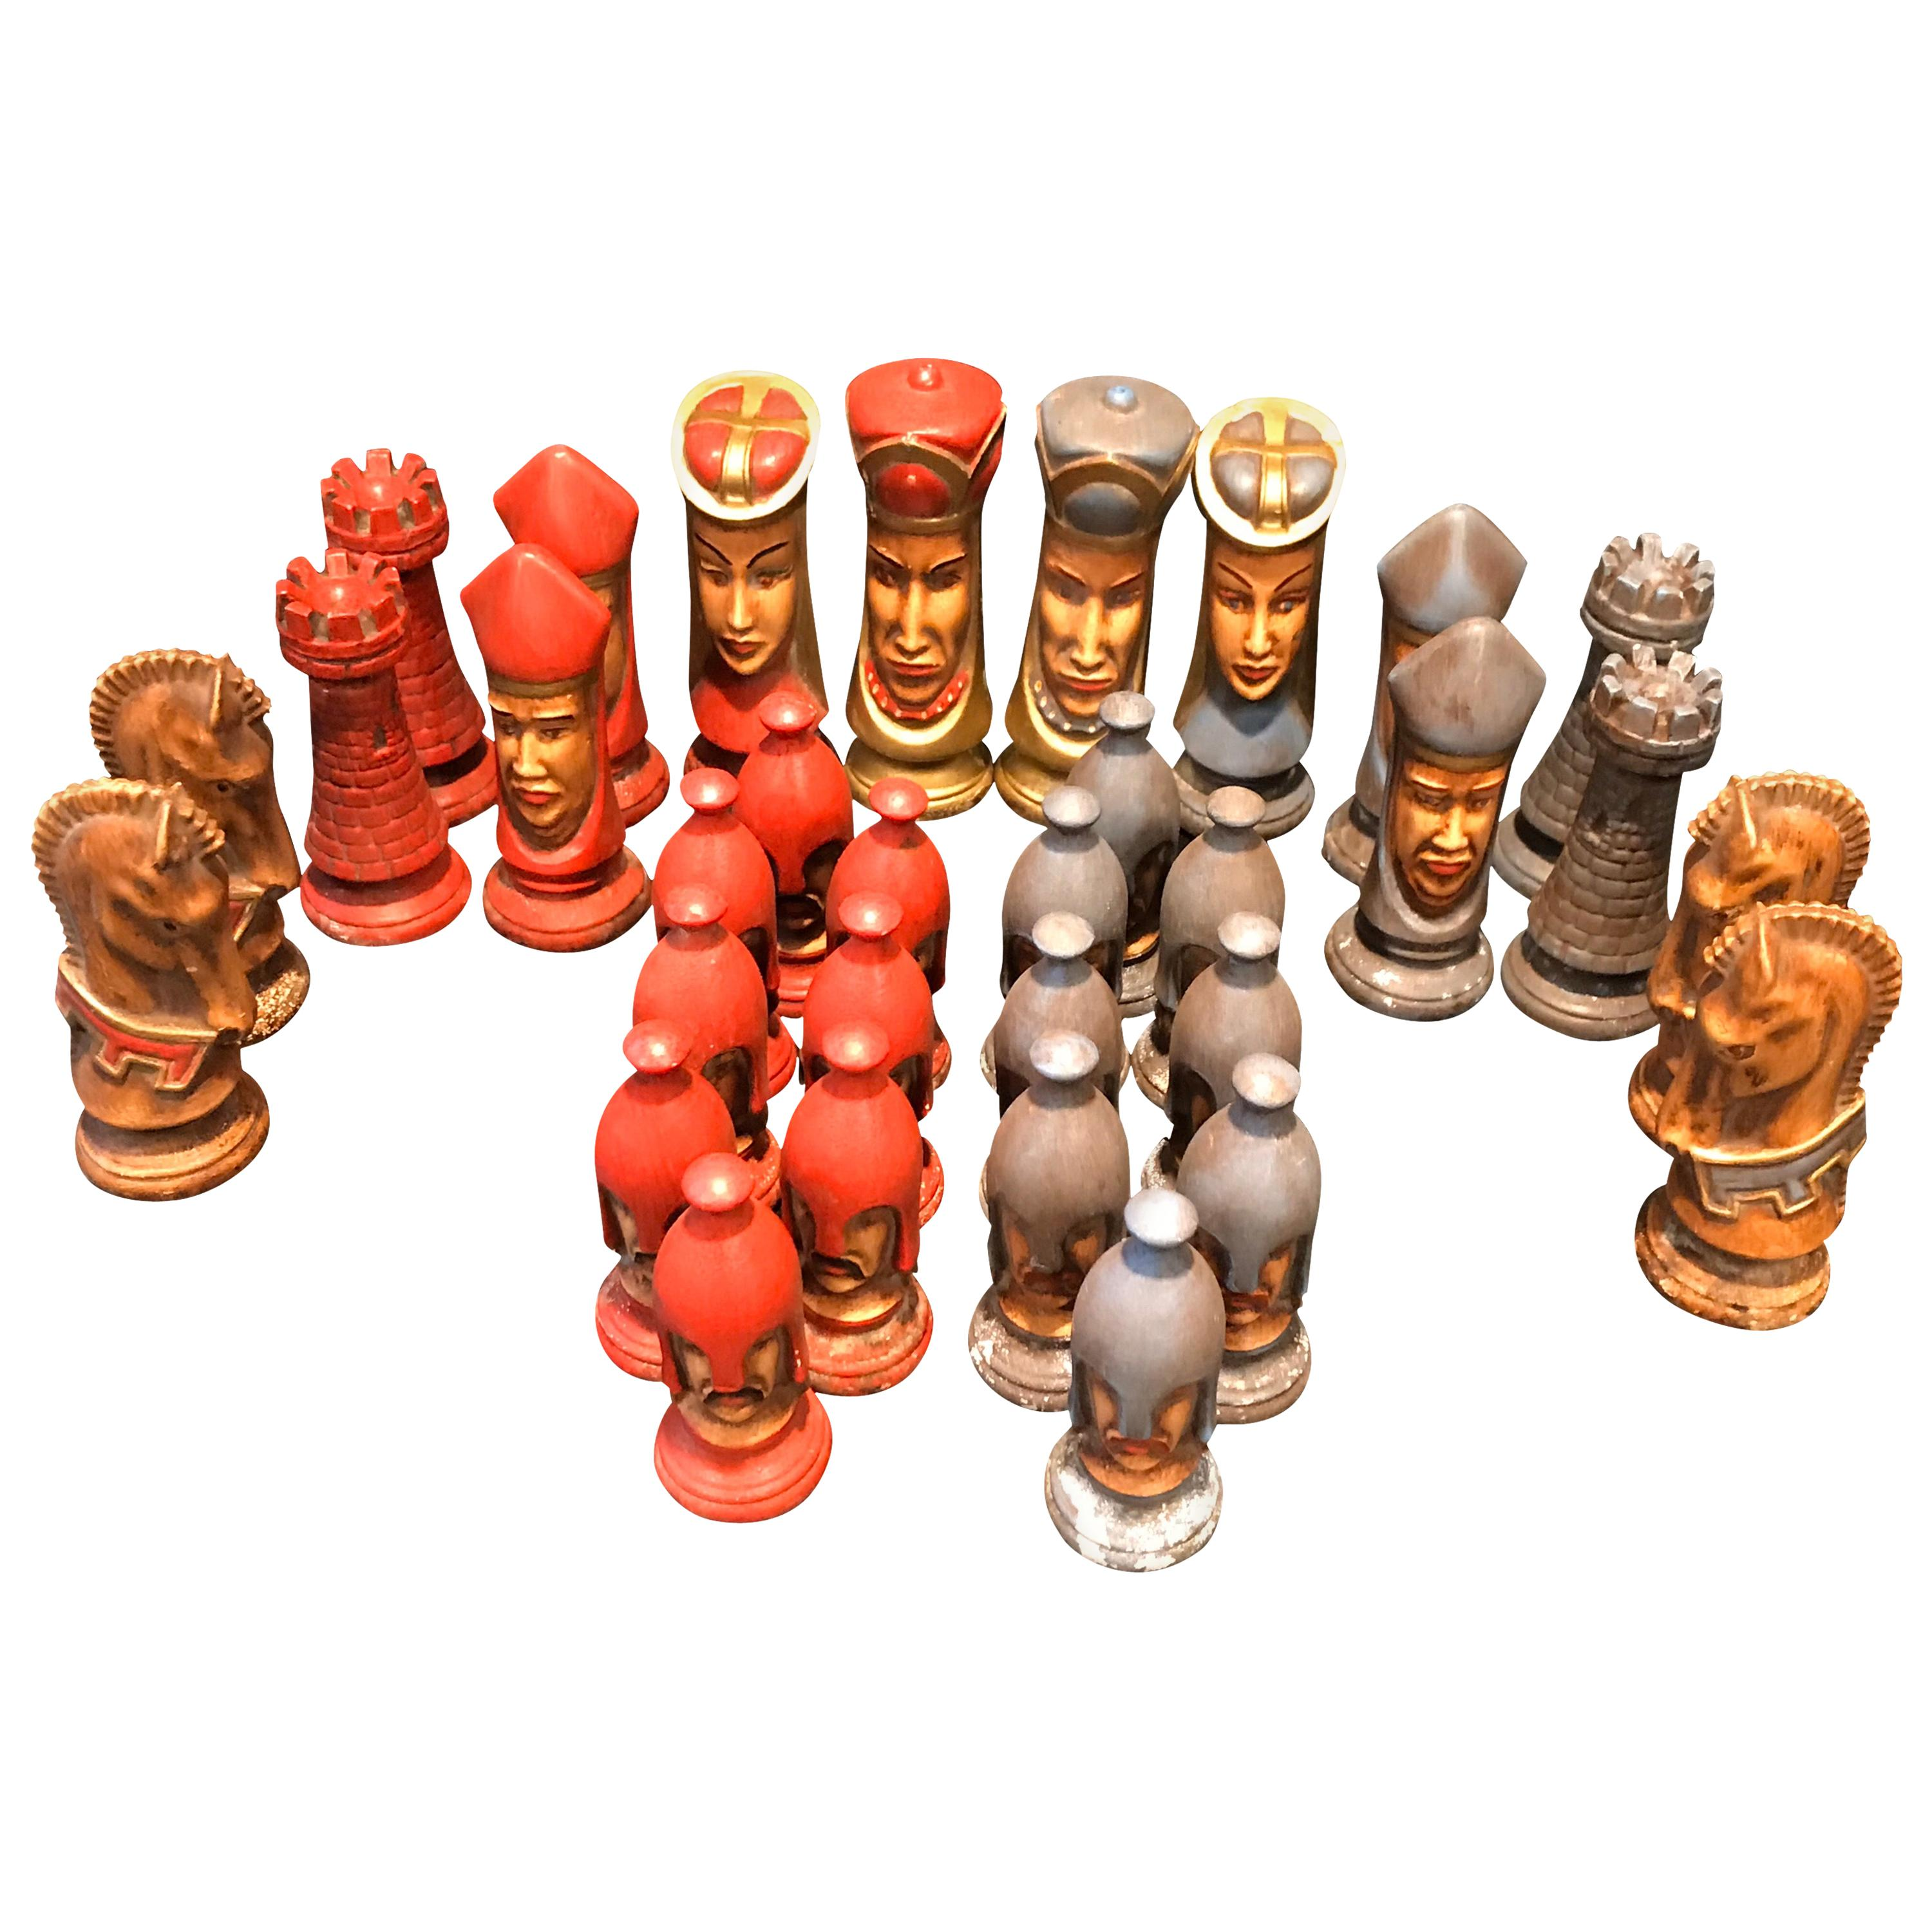 """Late 20th Century Gothic Midieval """"Game of Thrones"""" Style Chess Set"""